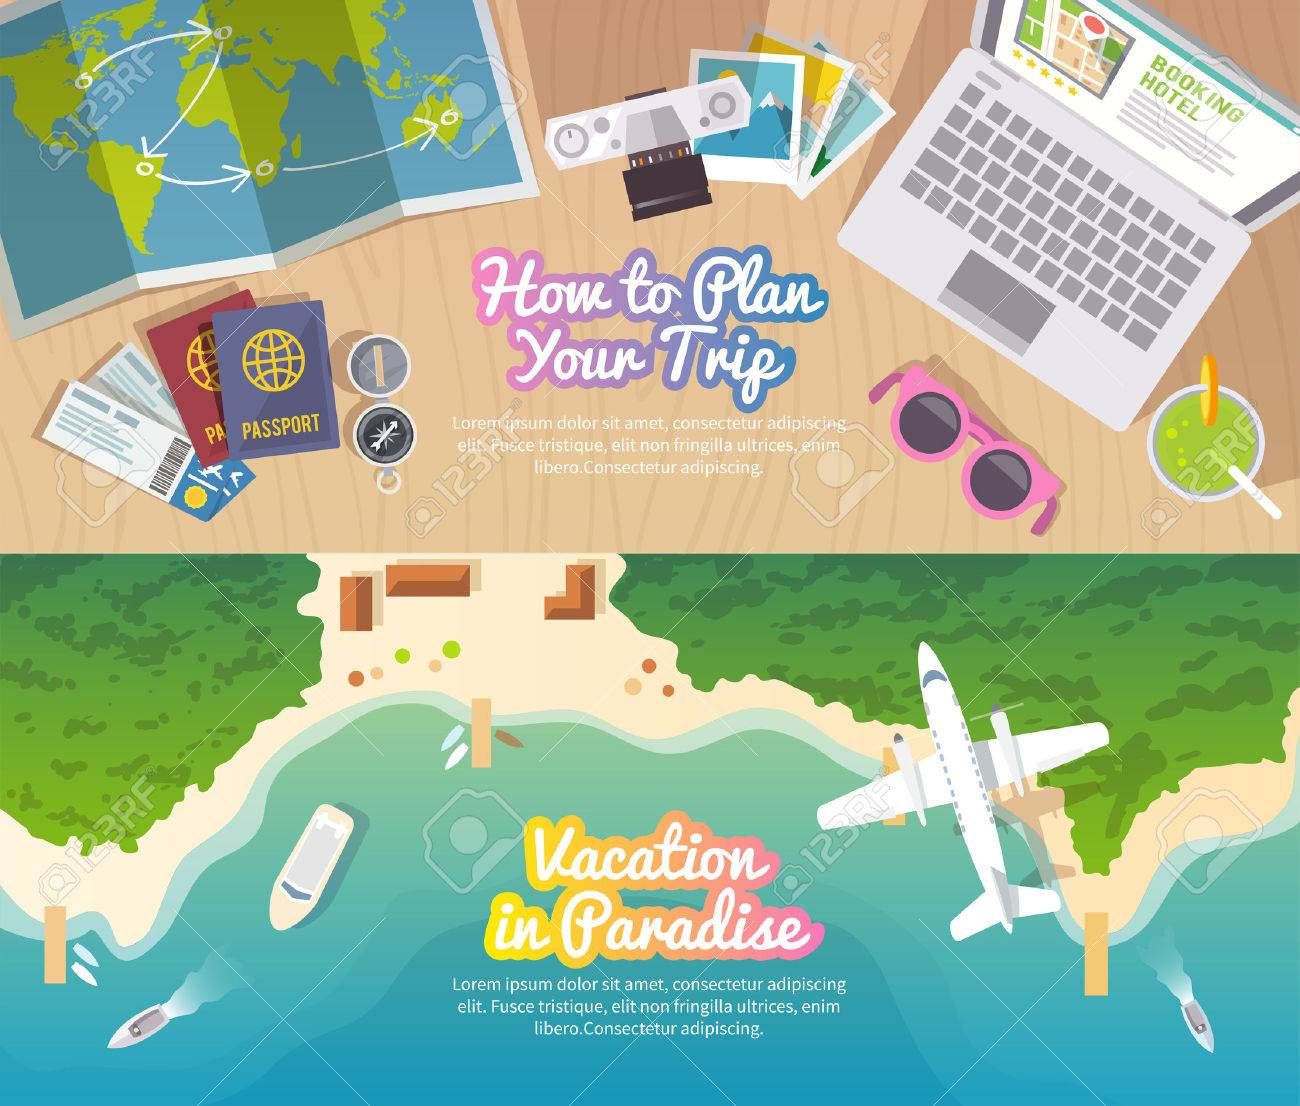 Colourful travel vector flat banner set for your business, web sites etc. Quality design illustrations, elements and concept. Trip plan. Vacation in Paradise. Top view. - 50303894